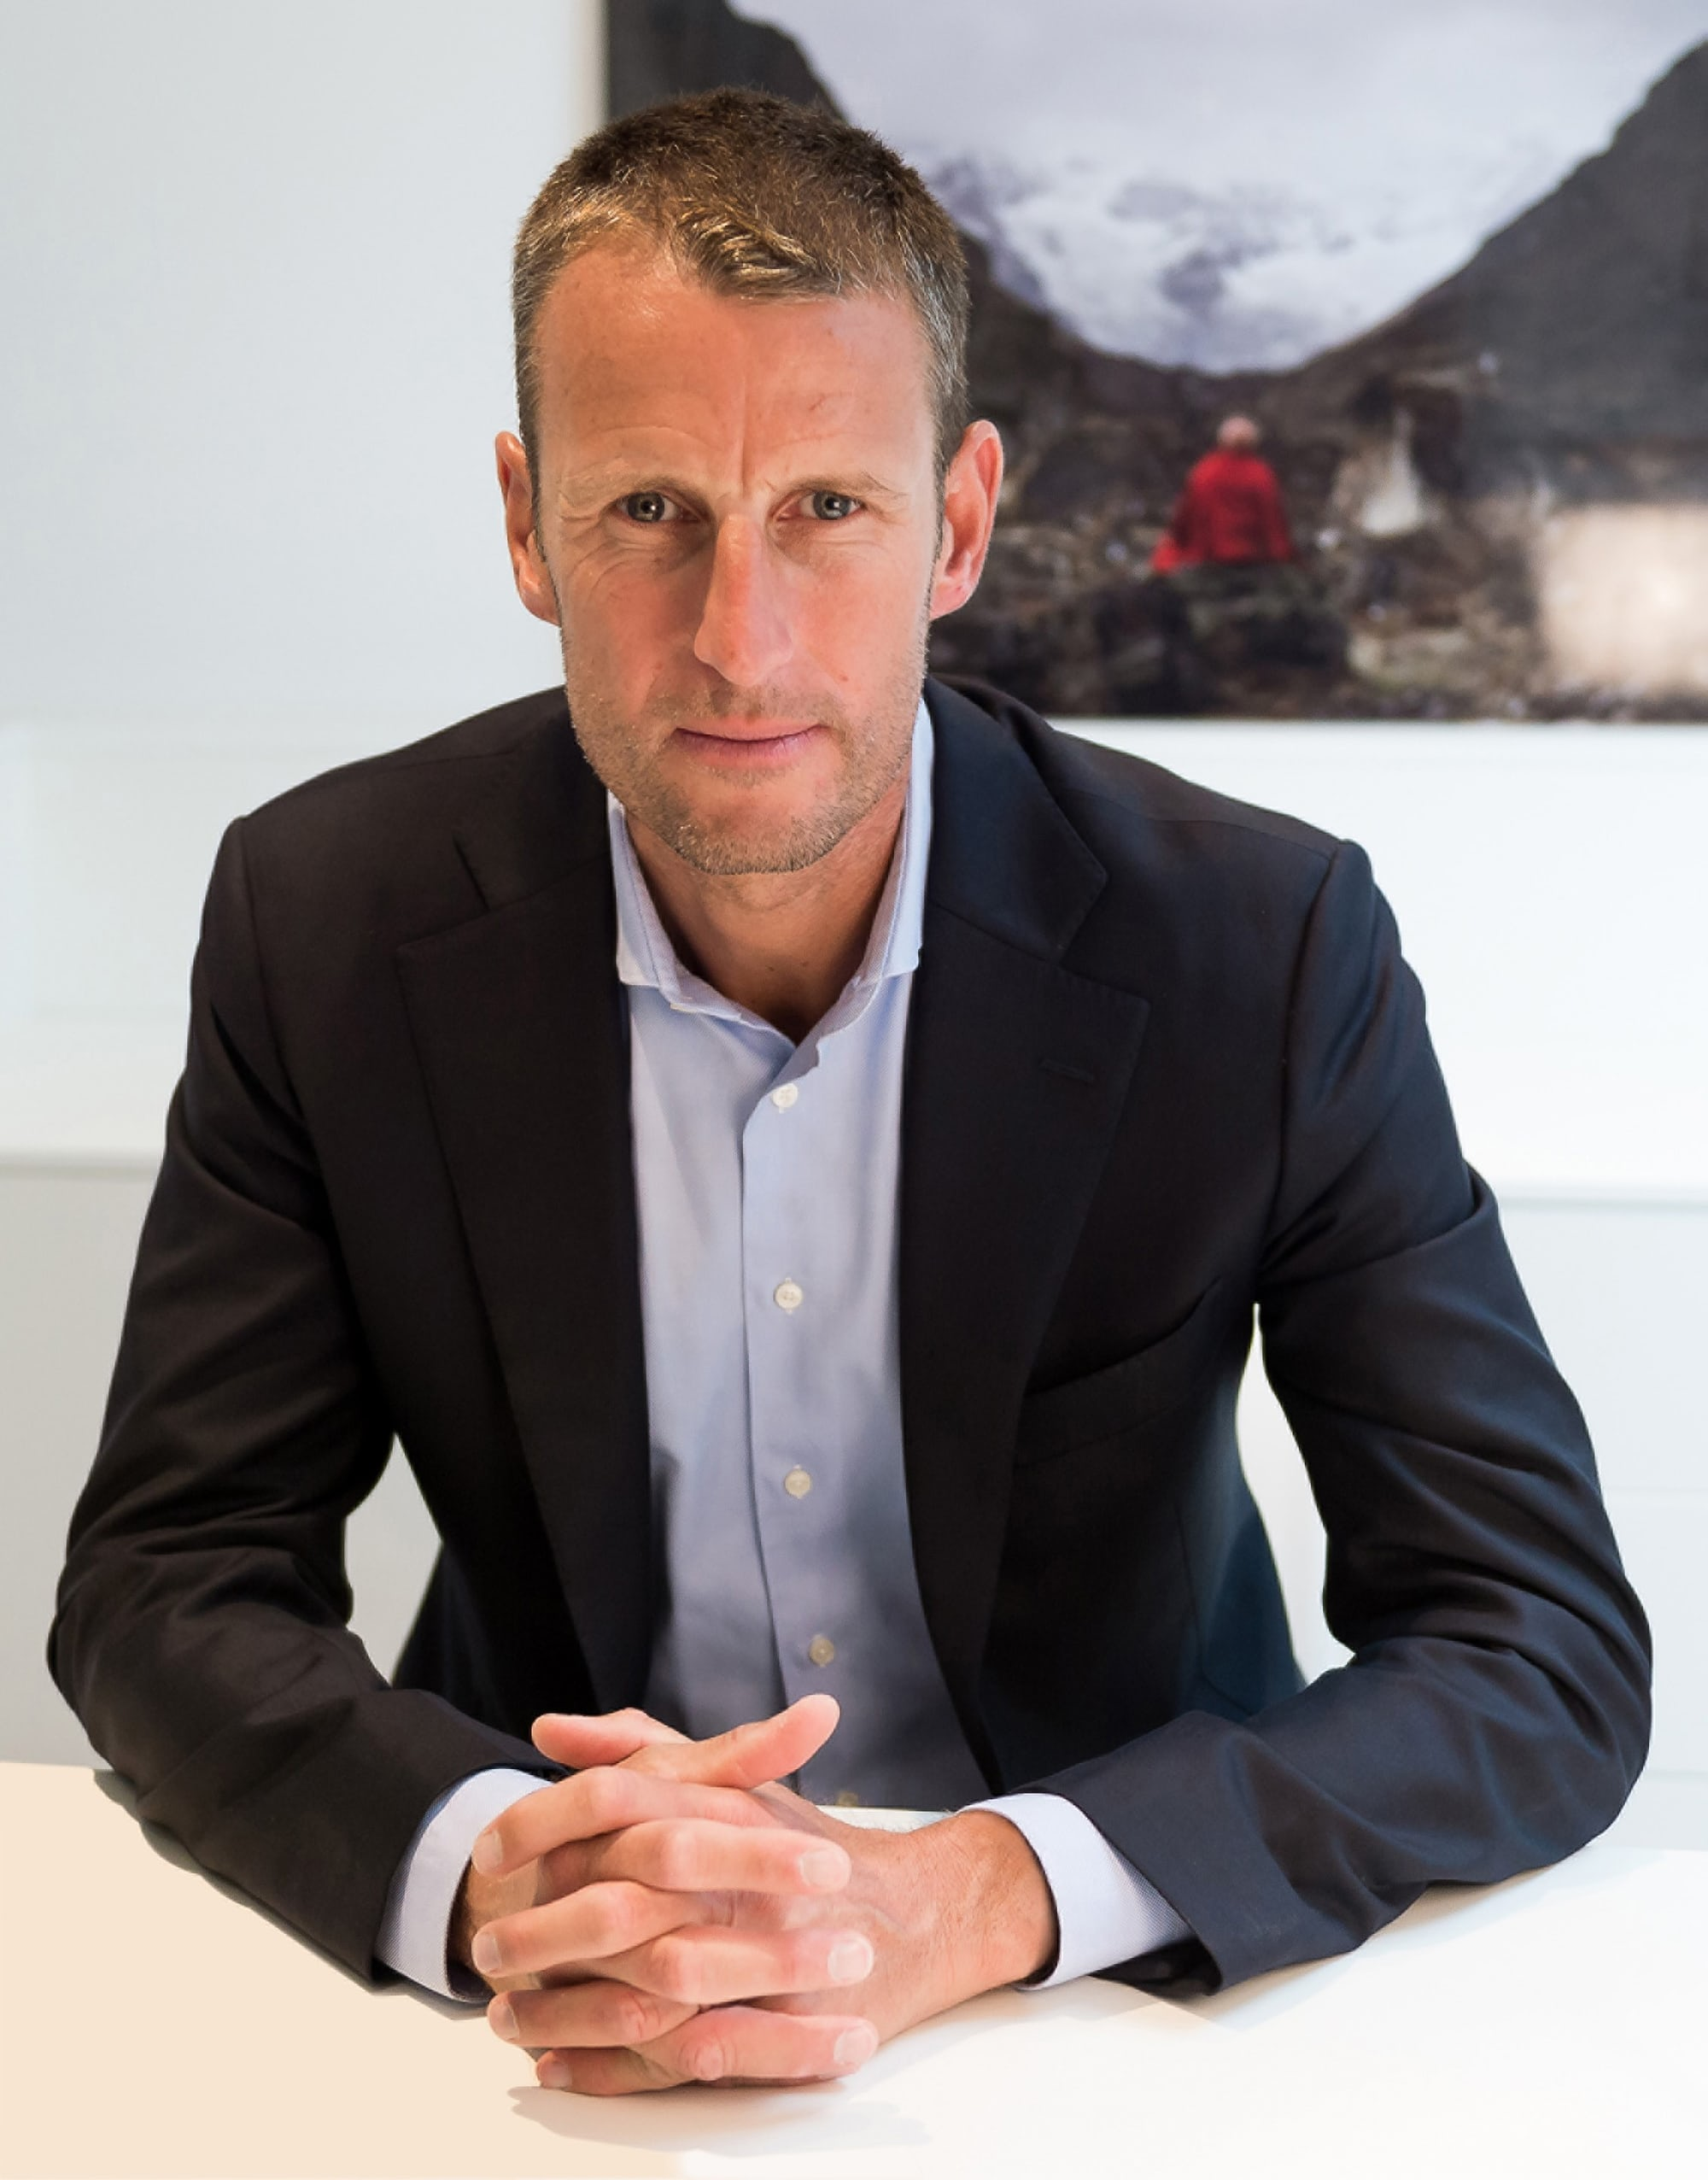 Patrick Pruneaux new CEO at UN. Business News: Patrick Pruniaux Appointed CEO Of Ulysse Nardin Business News: Patrick Pruniaux Appointed CEO Of Ulysse Nardin P